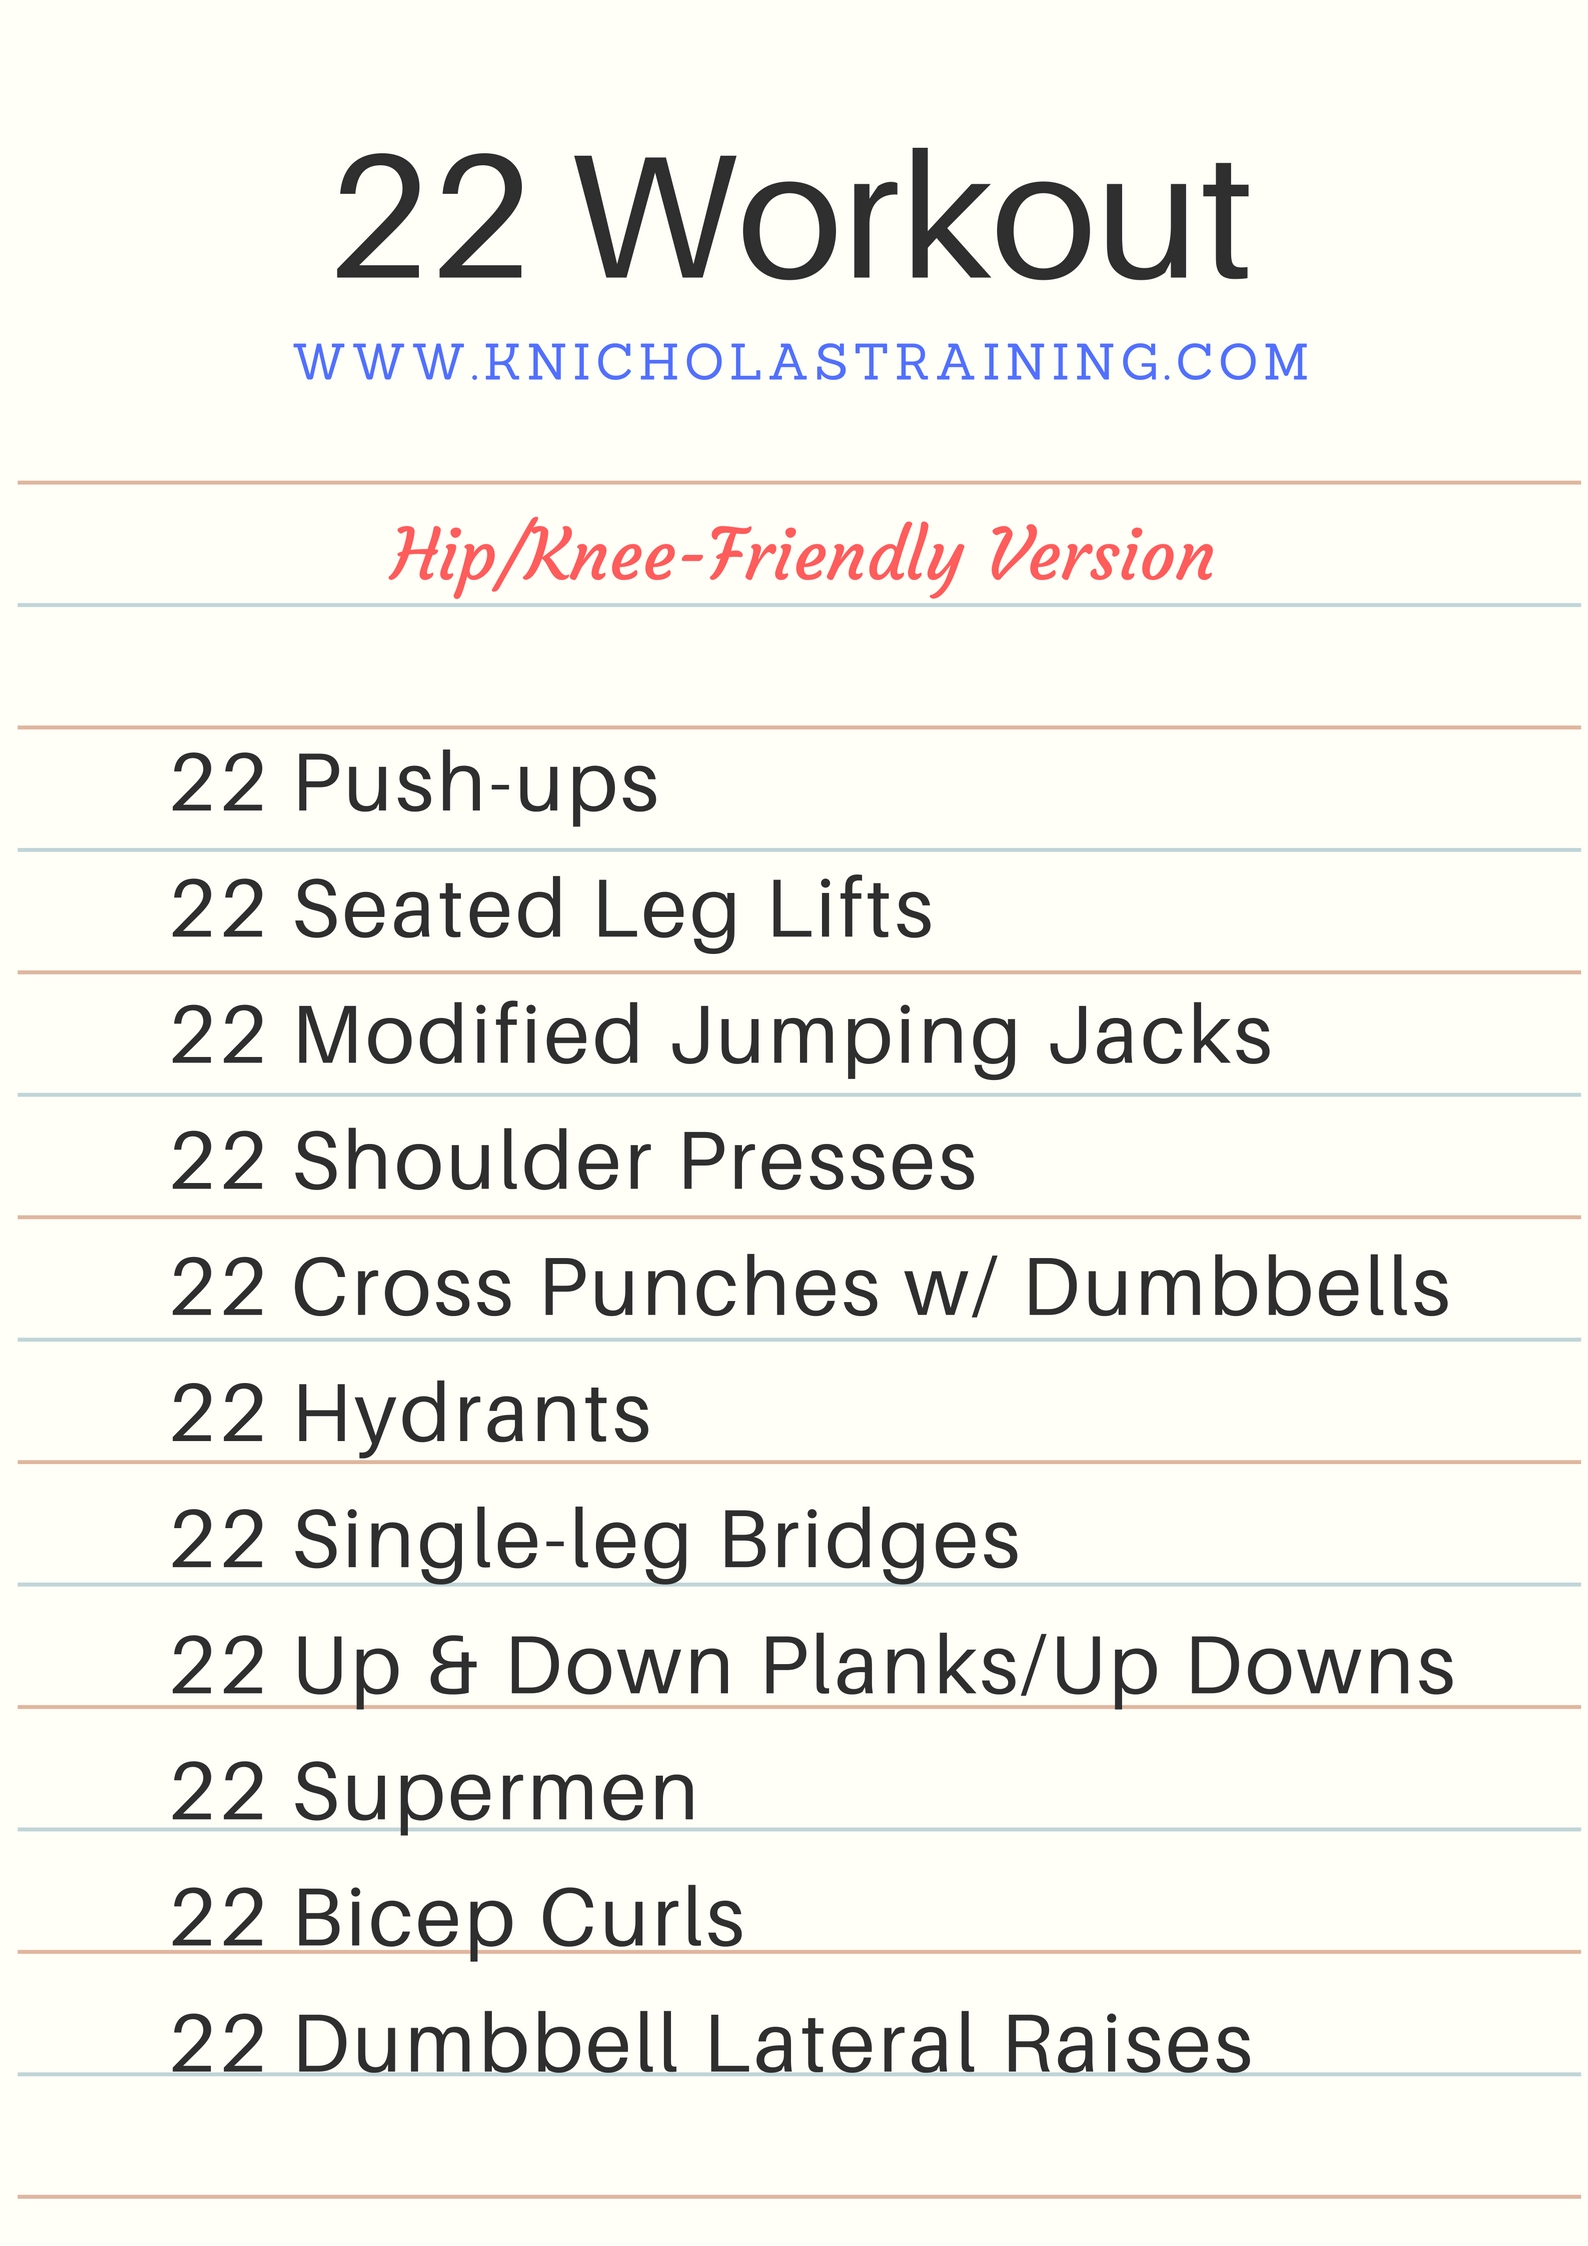 22 Workout KneeHip Friendly.jpg